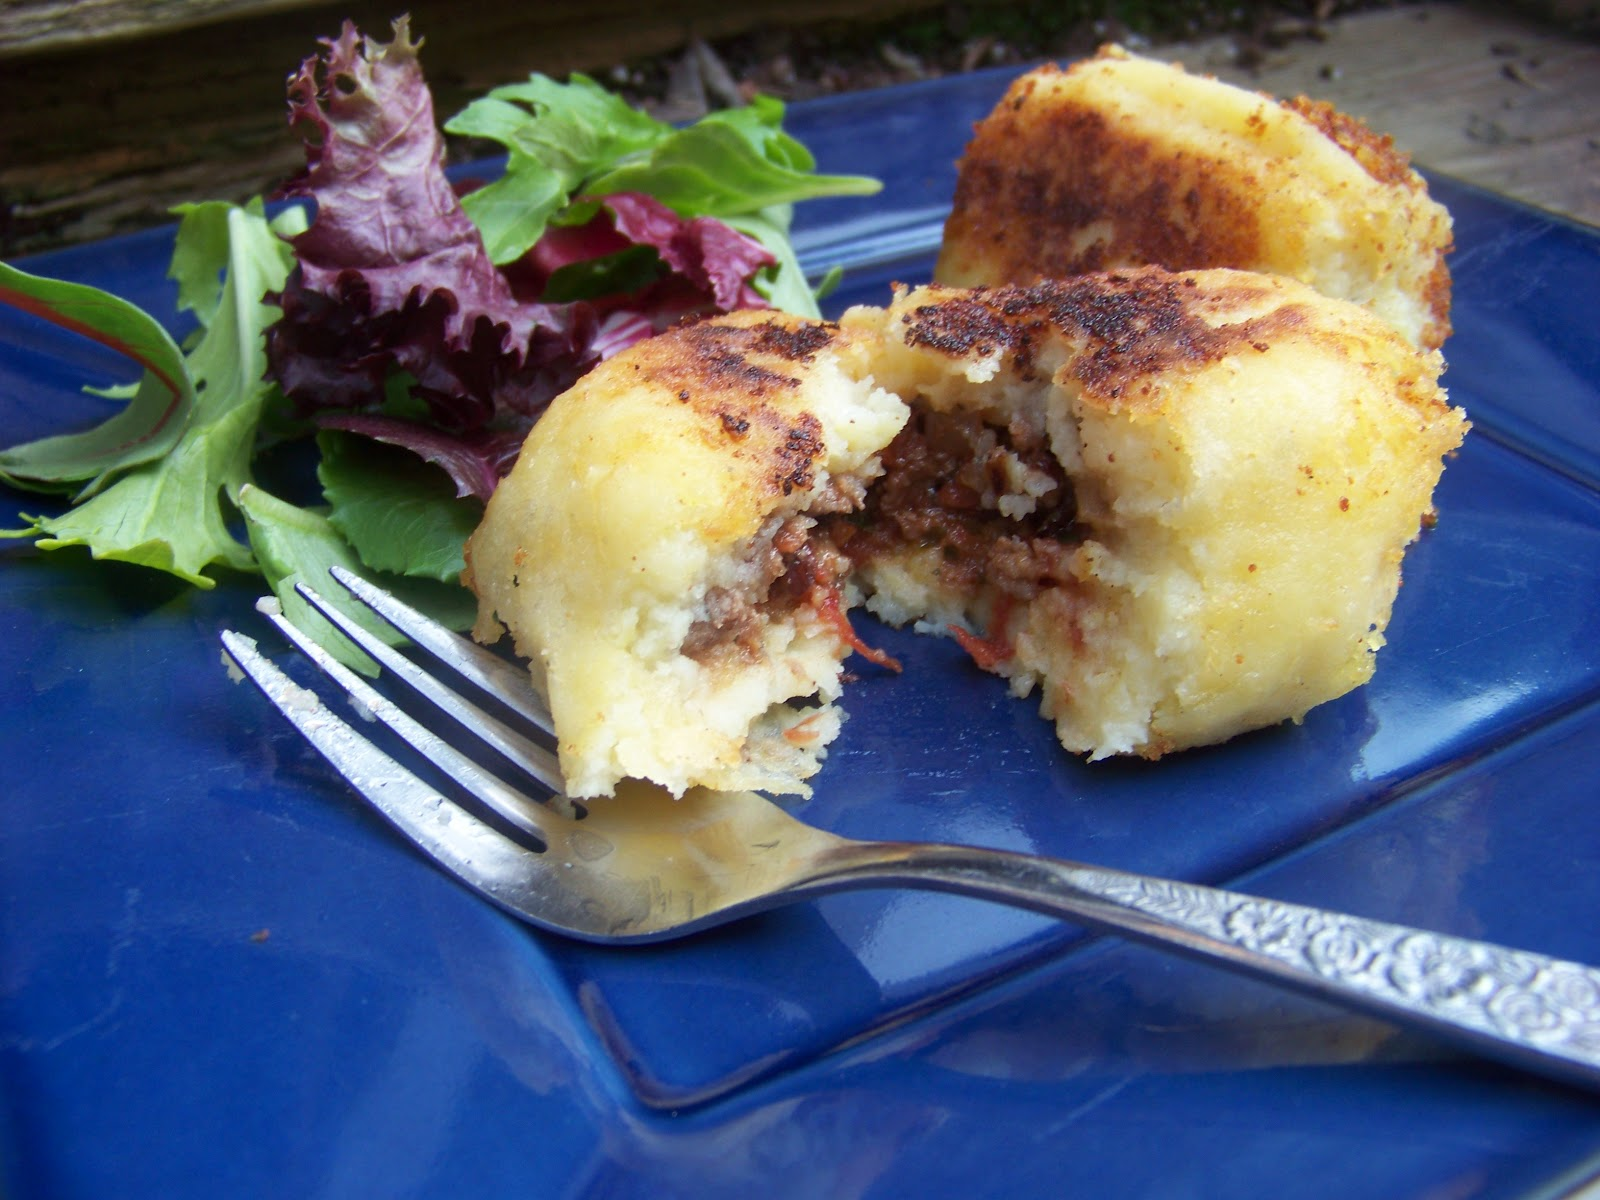 Tora's real food: Papa rellena: Peruvian stuffed potatoes